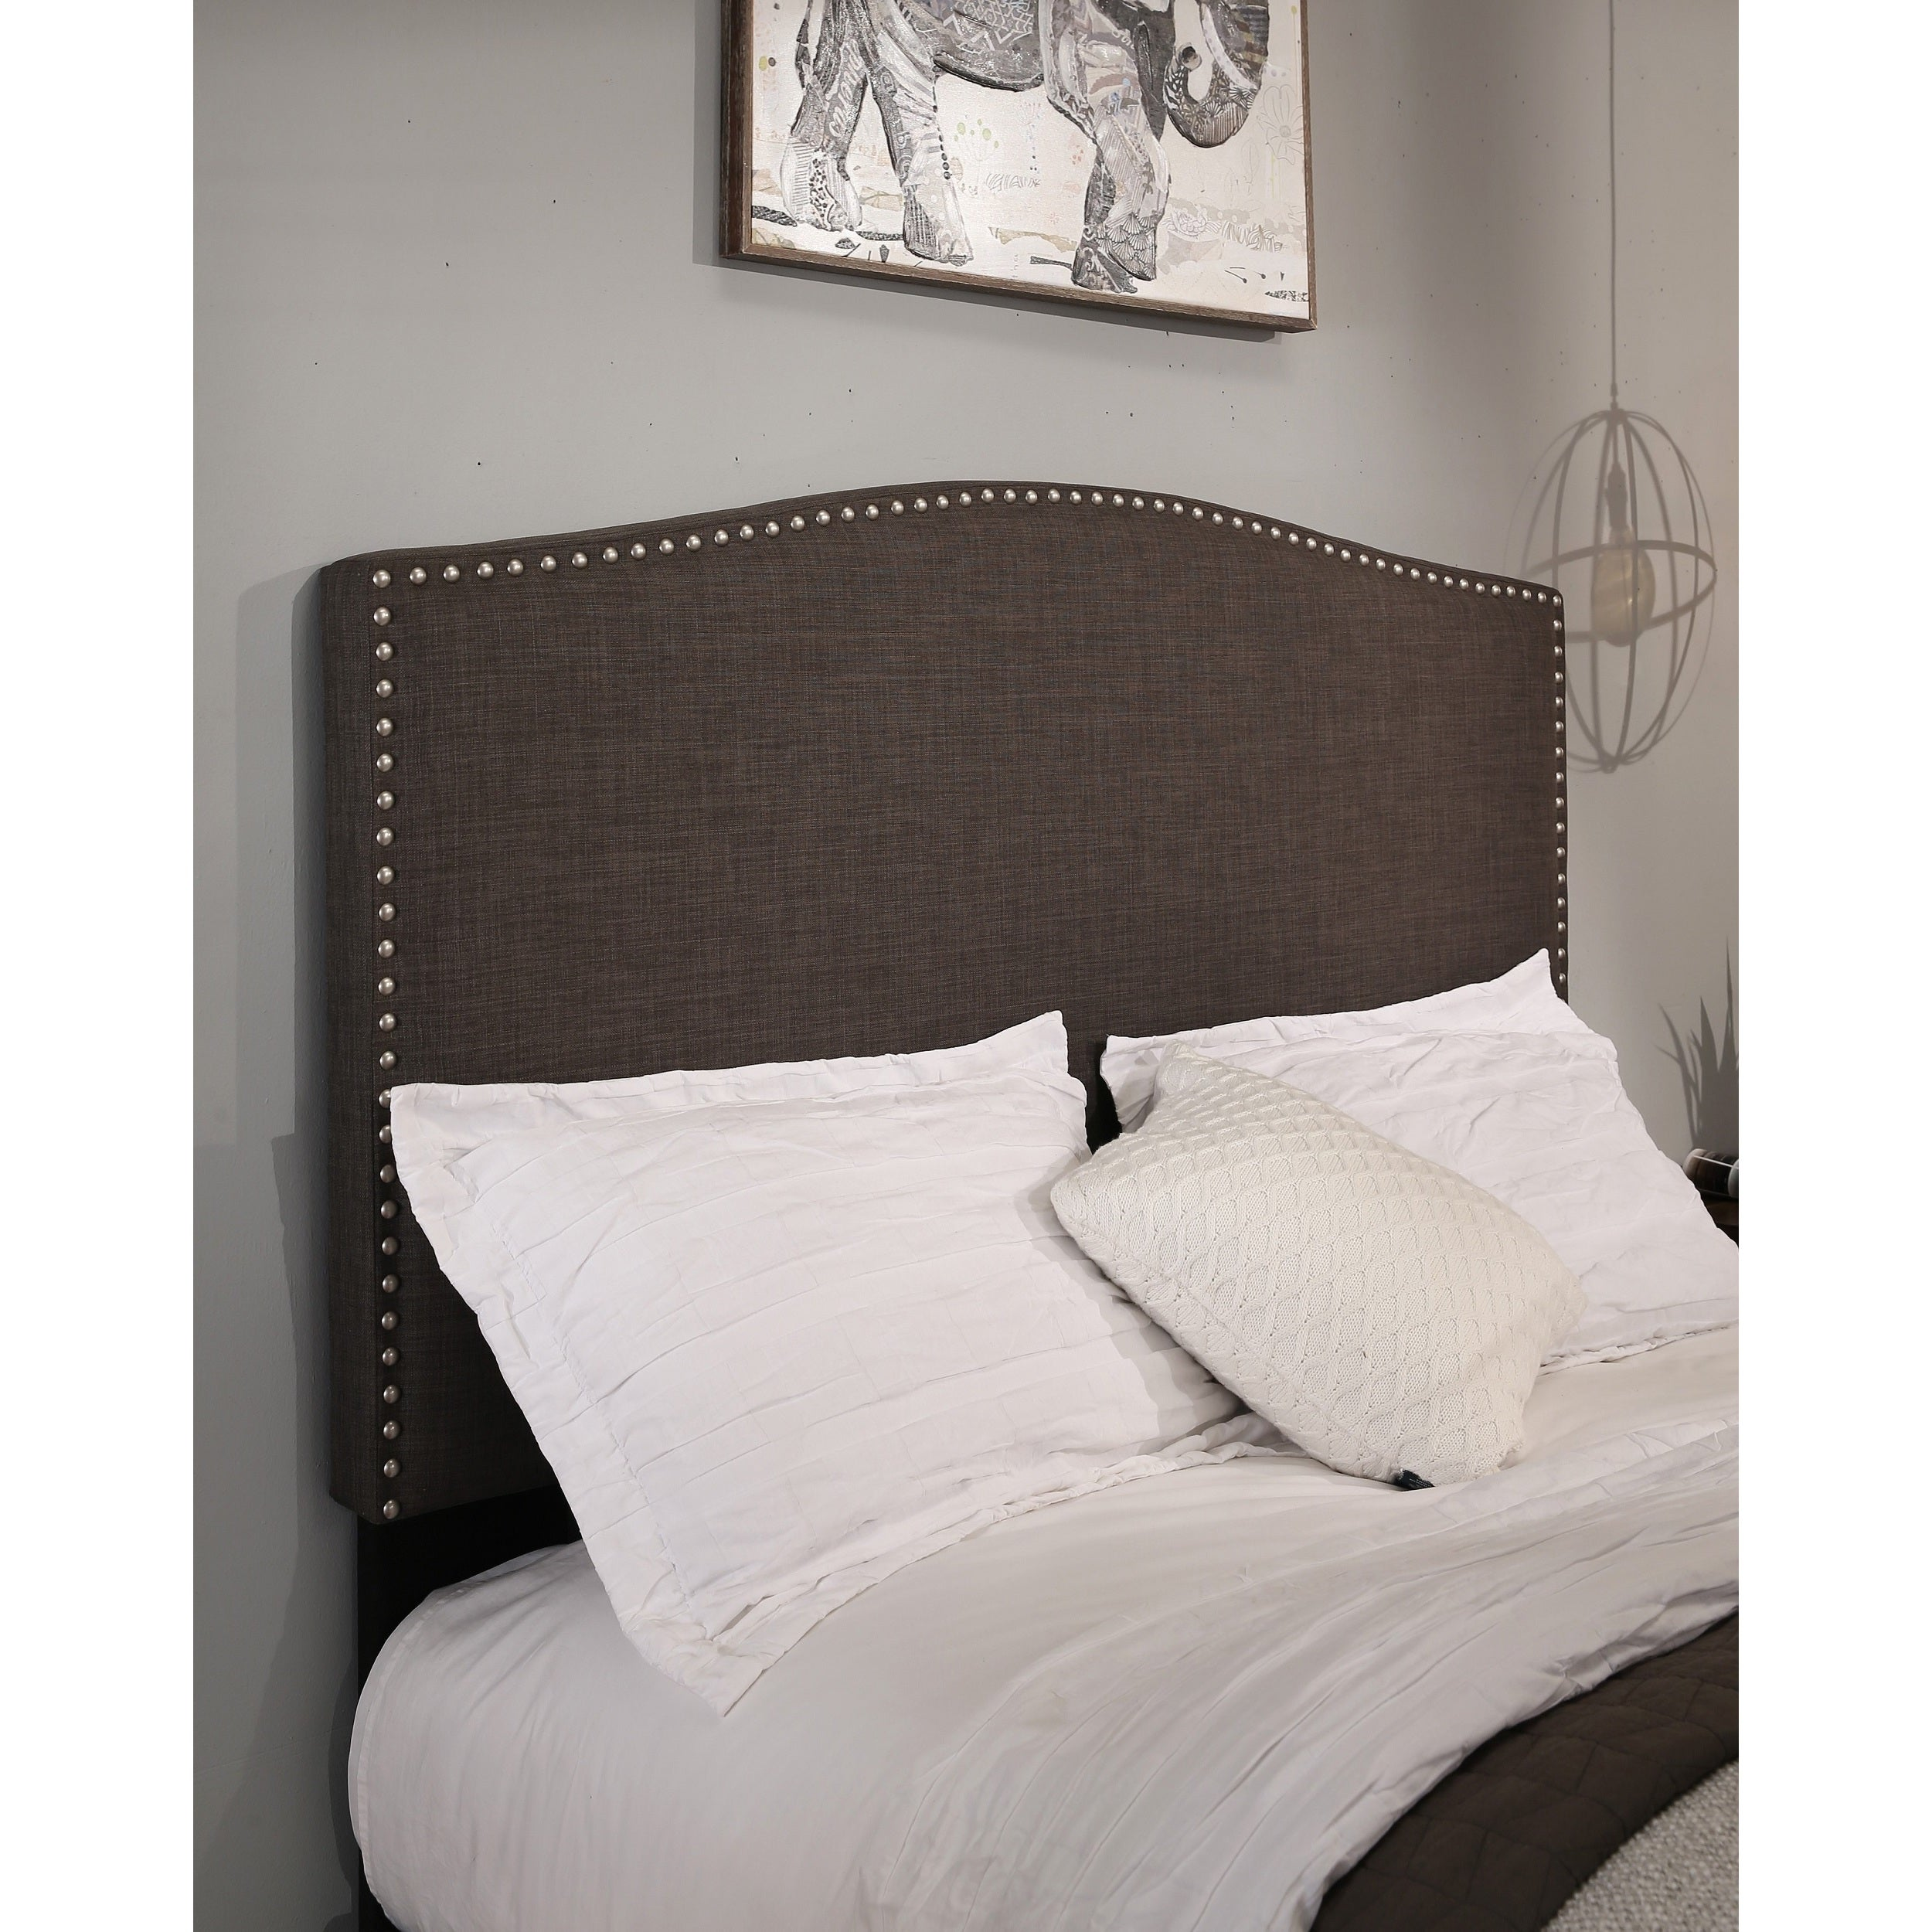 black headboard sale cheap bed grey floor four beds white size frame for fabric on queen upholstered tufted and king frames legs the beautiful base wooden cal padded with